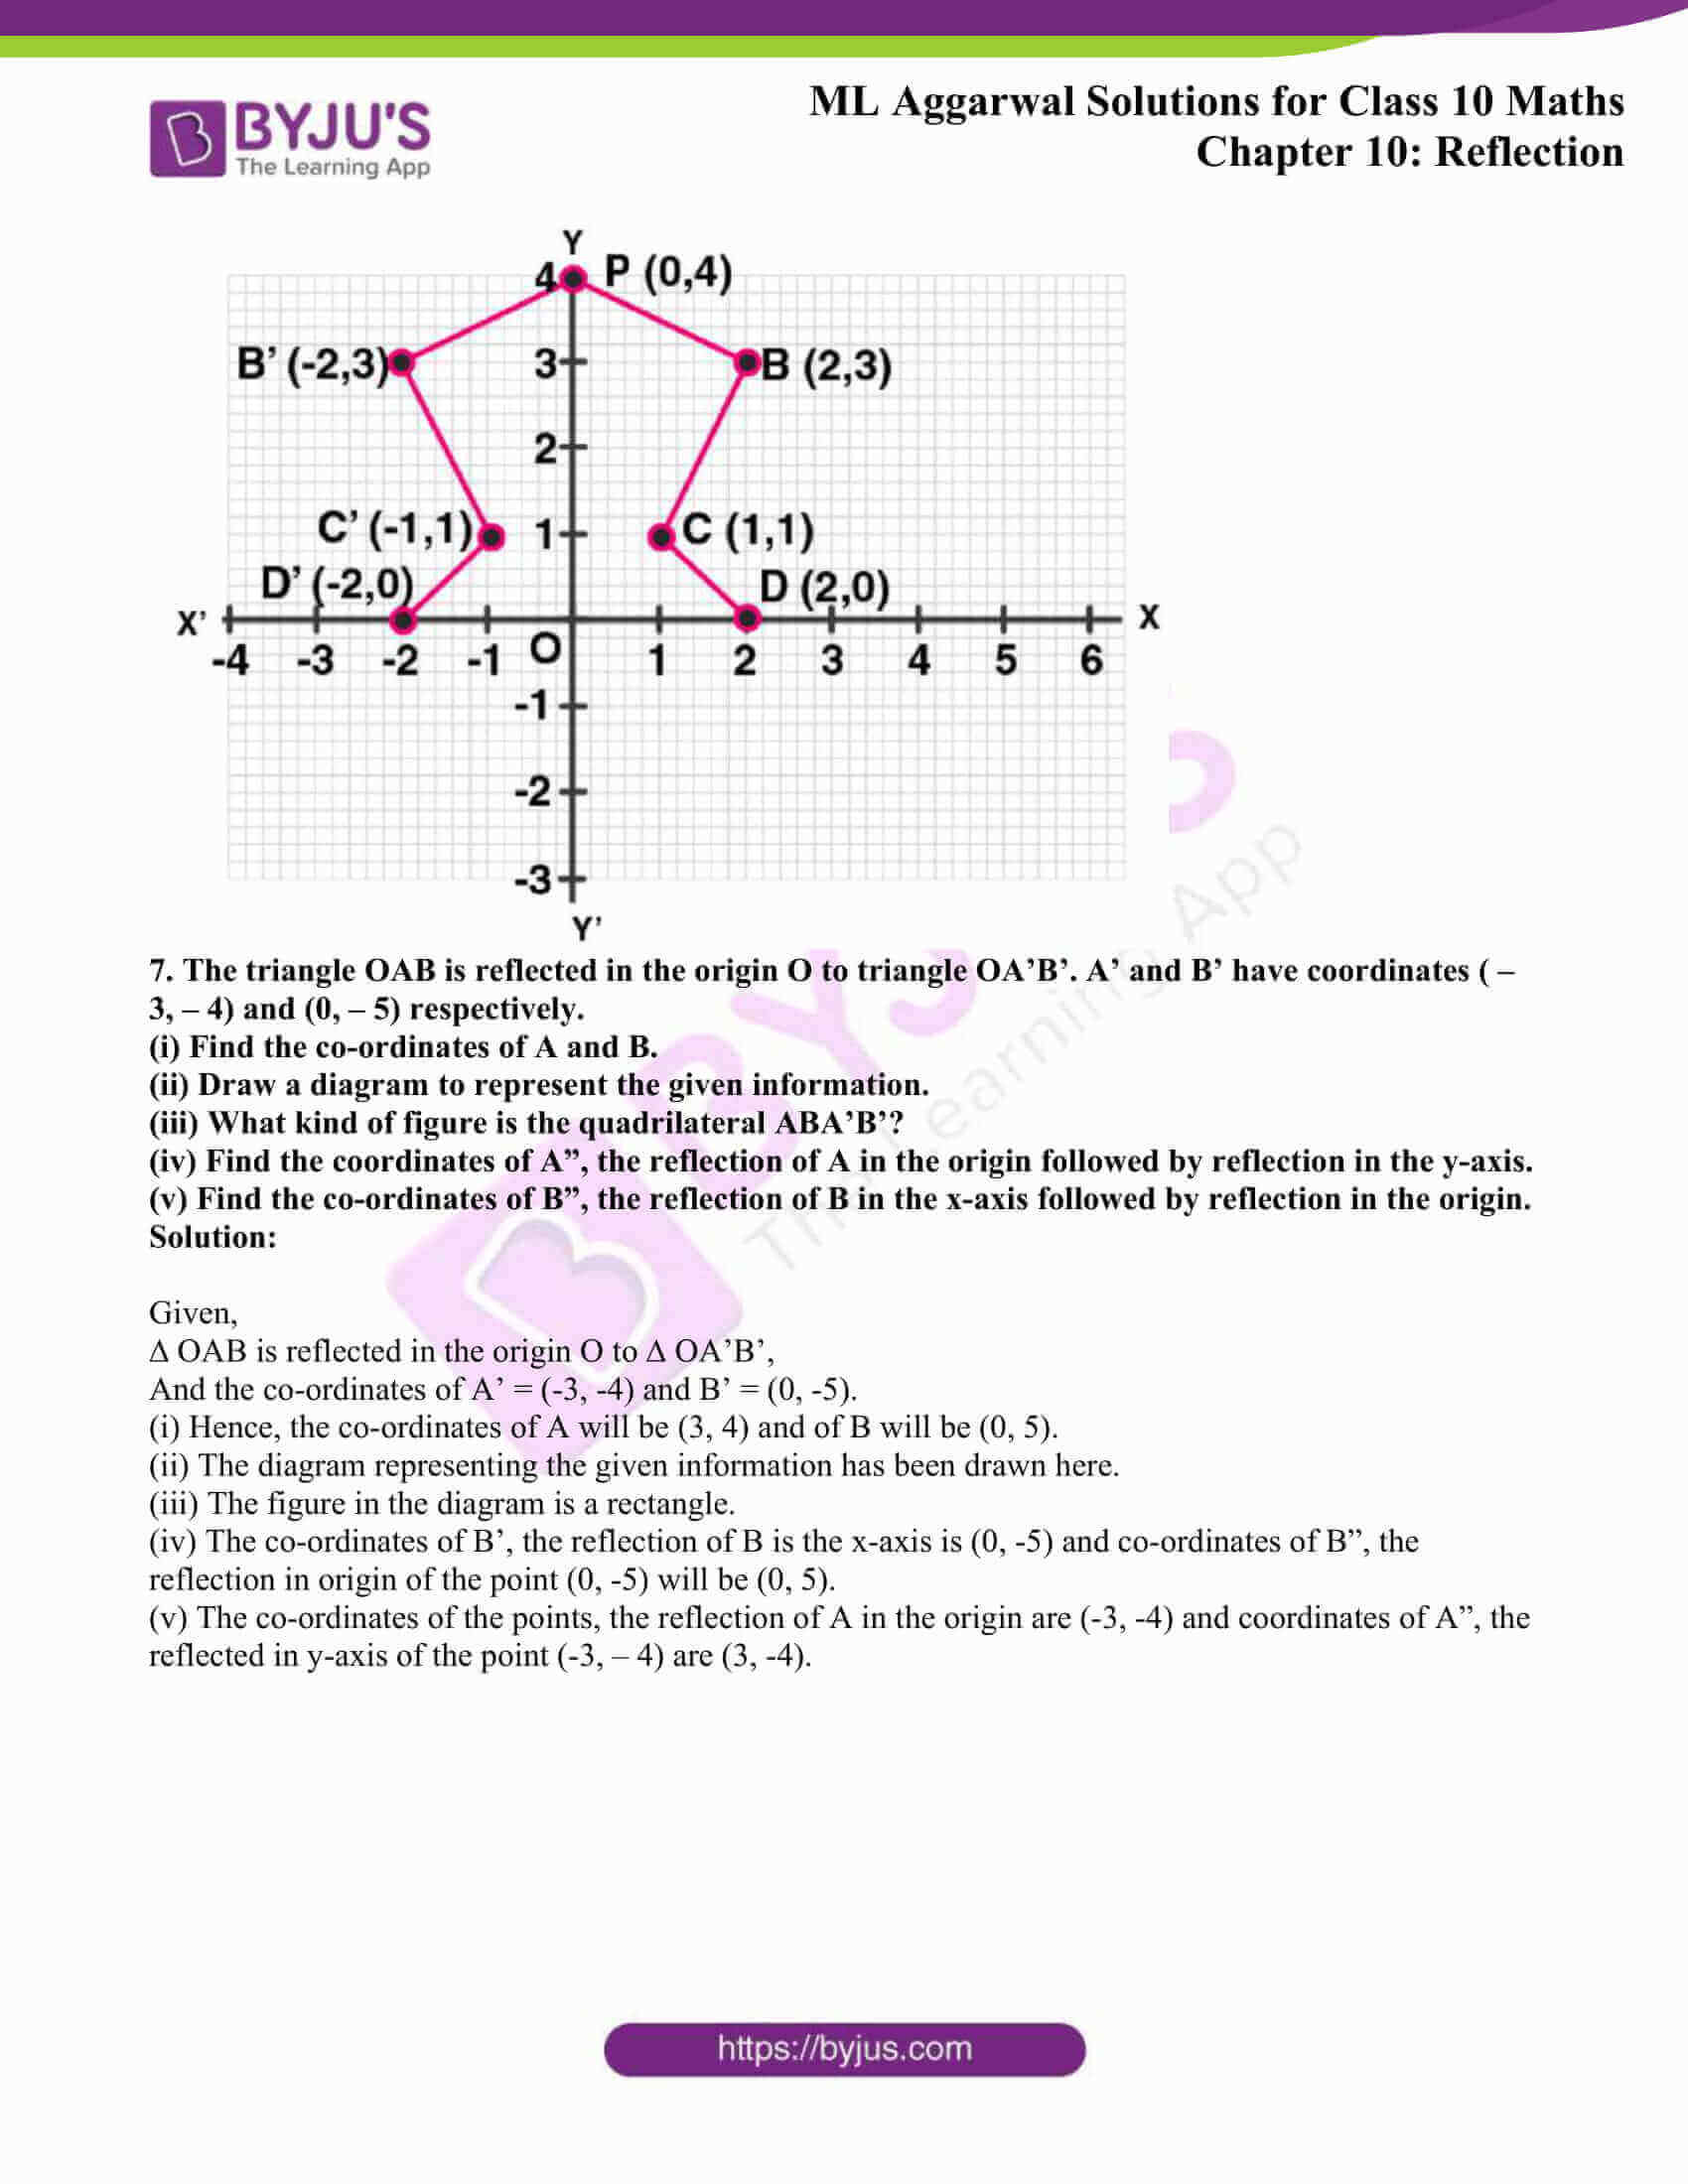 ml aggarwal solutions class 10 maths chapter 10 25